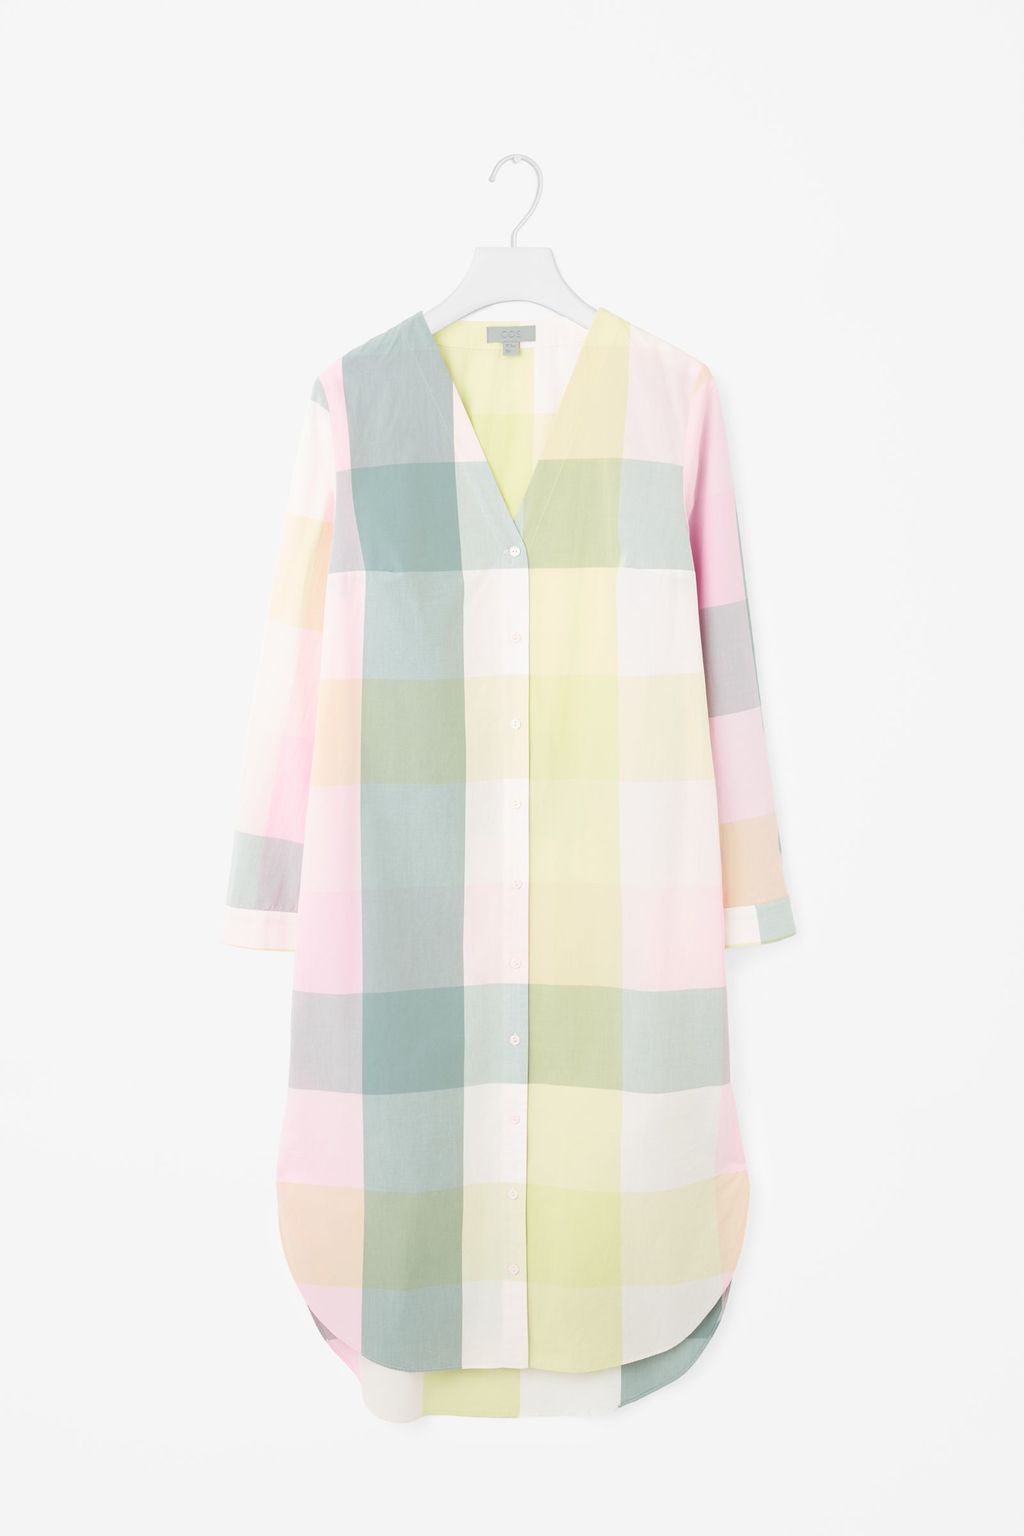 V Neck Checked Shirt Dress - style: tunic; neckline: v-neck; pattern: checked/gingham; predominant colour: blush; secondary colour: primrose yellow; length: just above the knee; fit: body skimming; fibres: cotton - 100%; sleeve length: long sleeve; sleeve style: standard; occasions: holiday; pattern type: fabric; texture group: other - light to midweight; multicoloured: multicoloured; season: s/s 2016